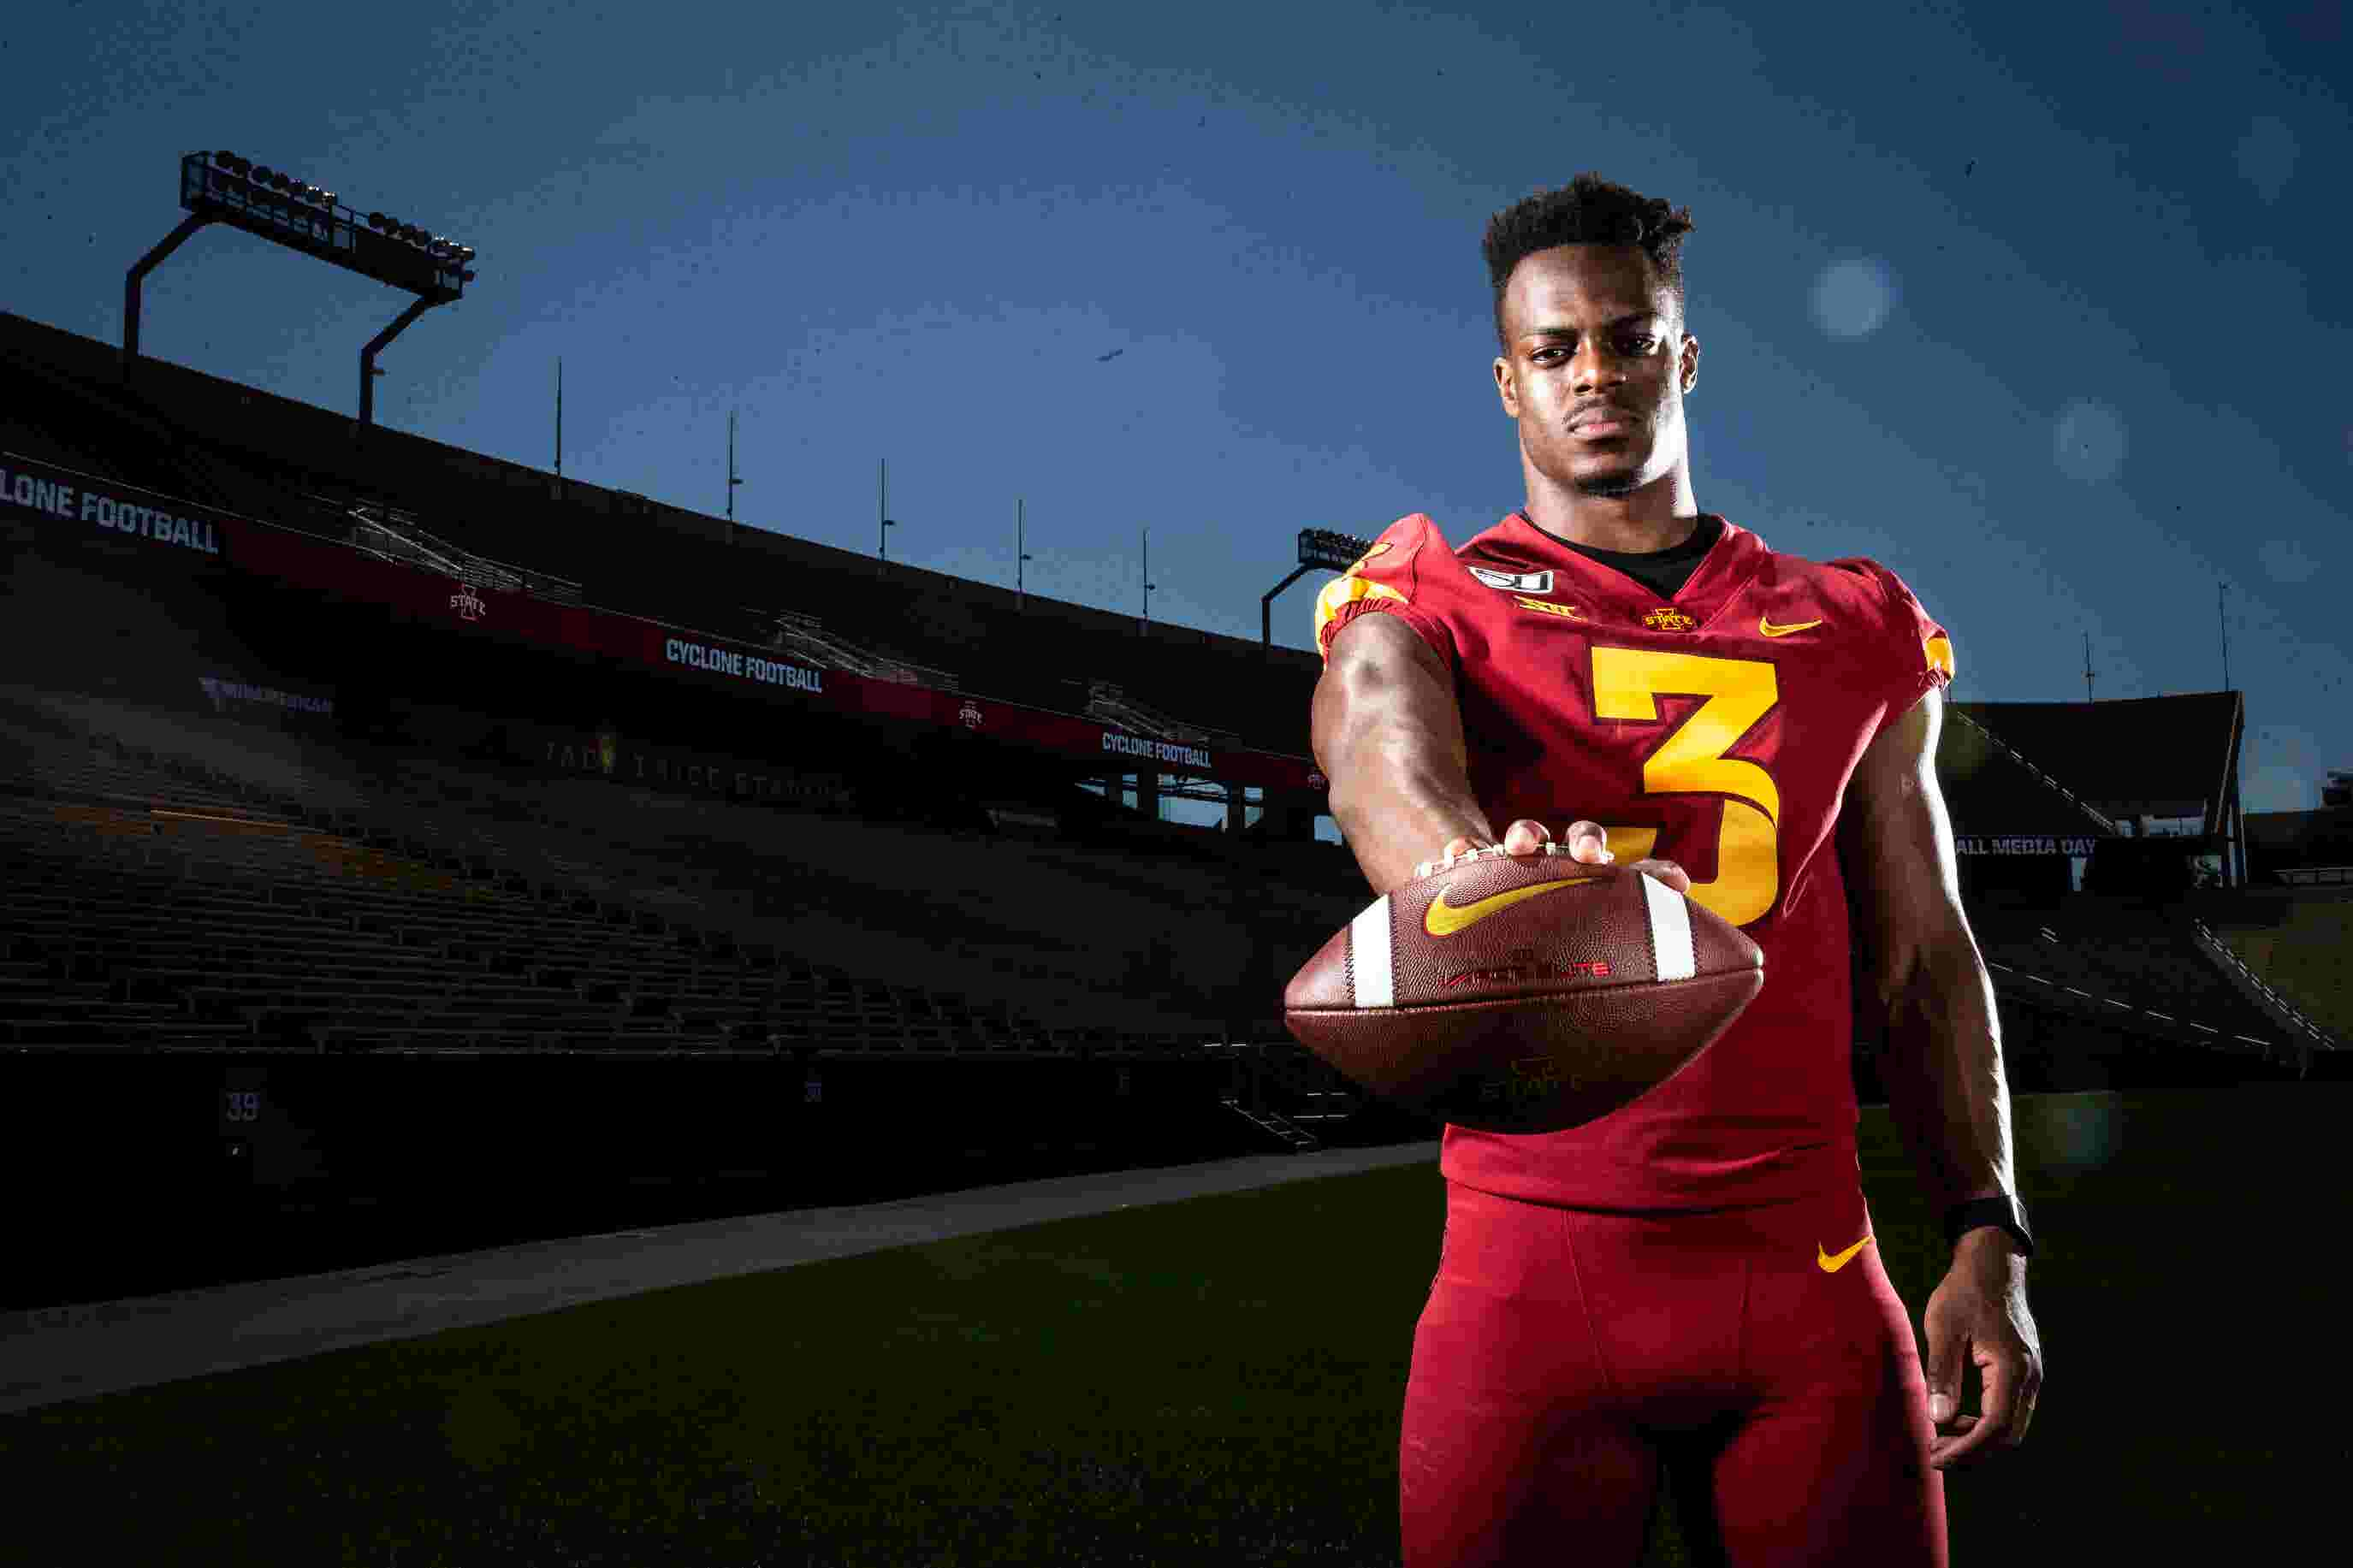 Iowa State's Kene Nwangwu didn't want to be known as a one-dimensional player